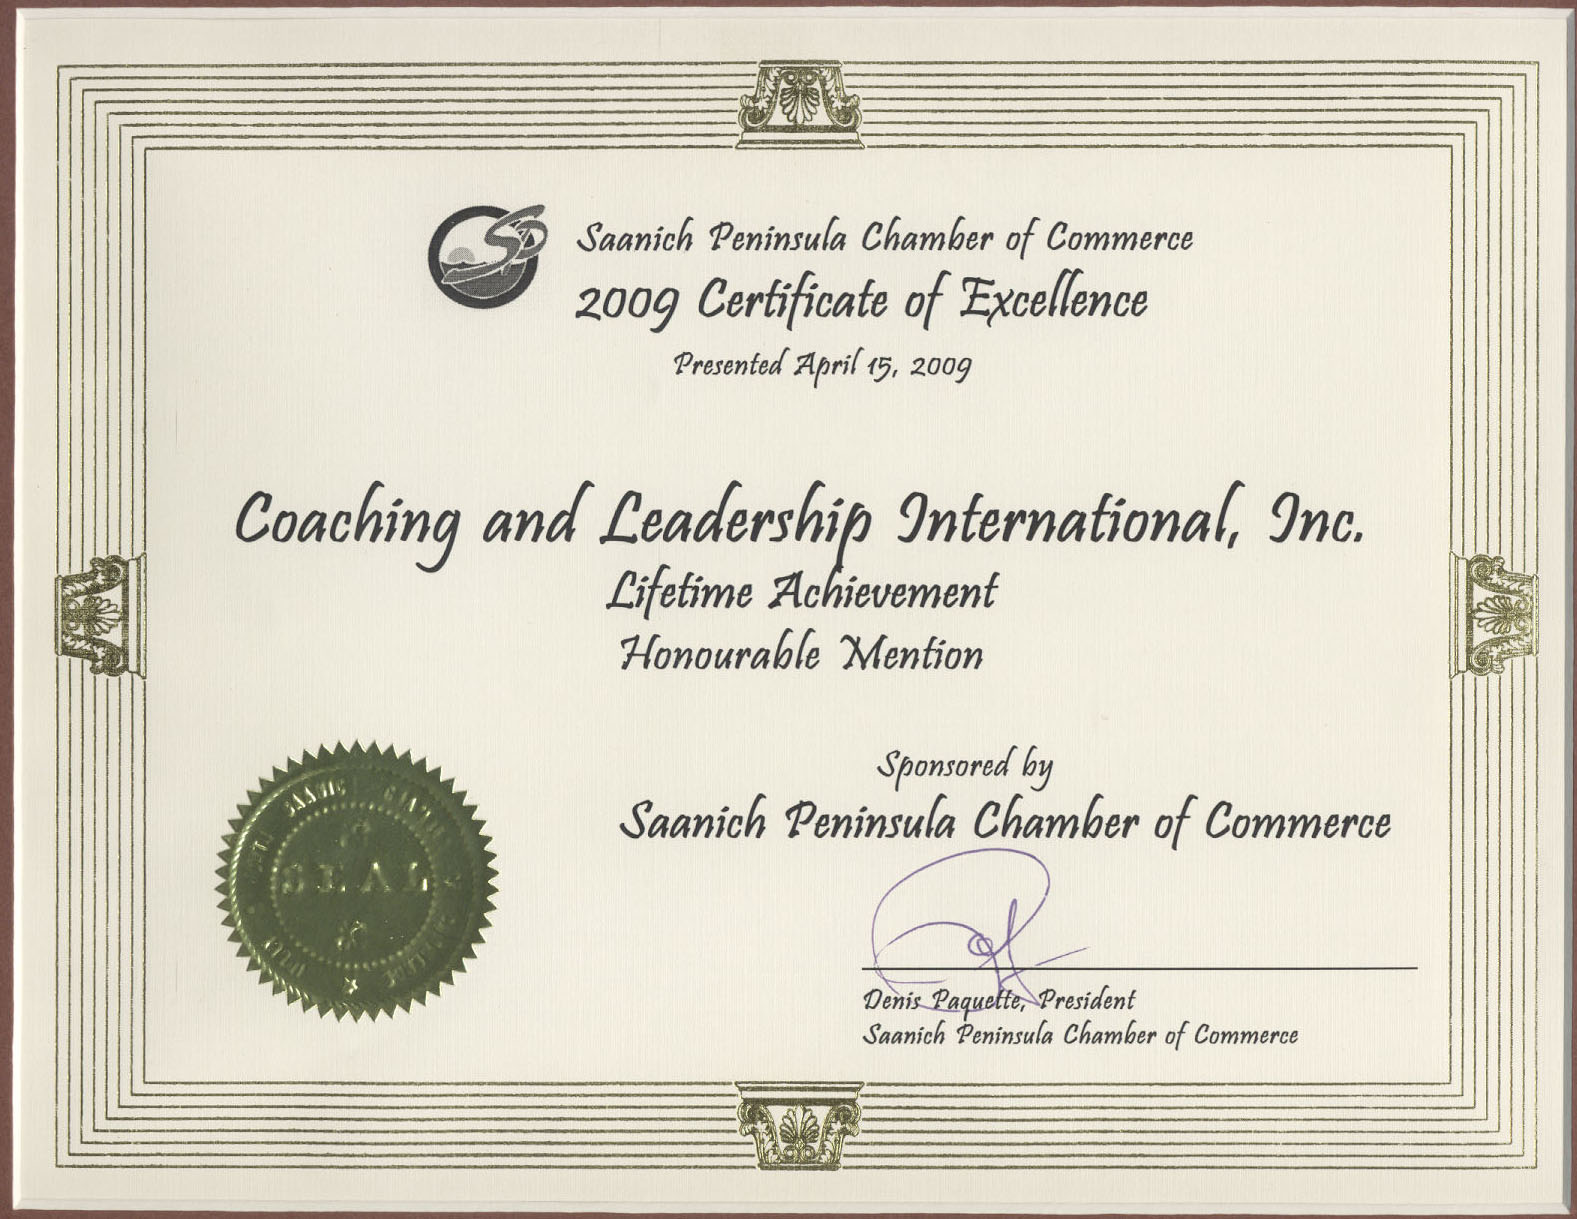 Award Winning Business and Life Coach Training Course and Coaching – Achievement Award Wording